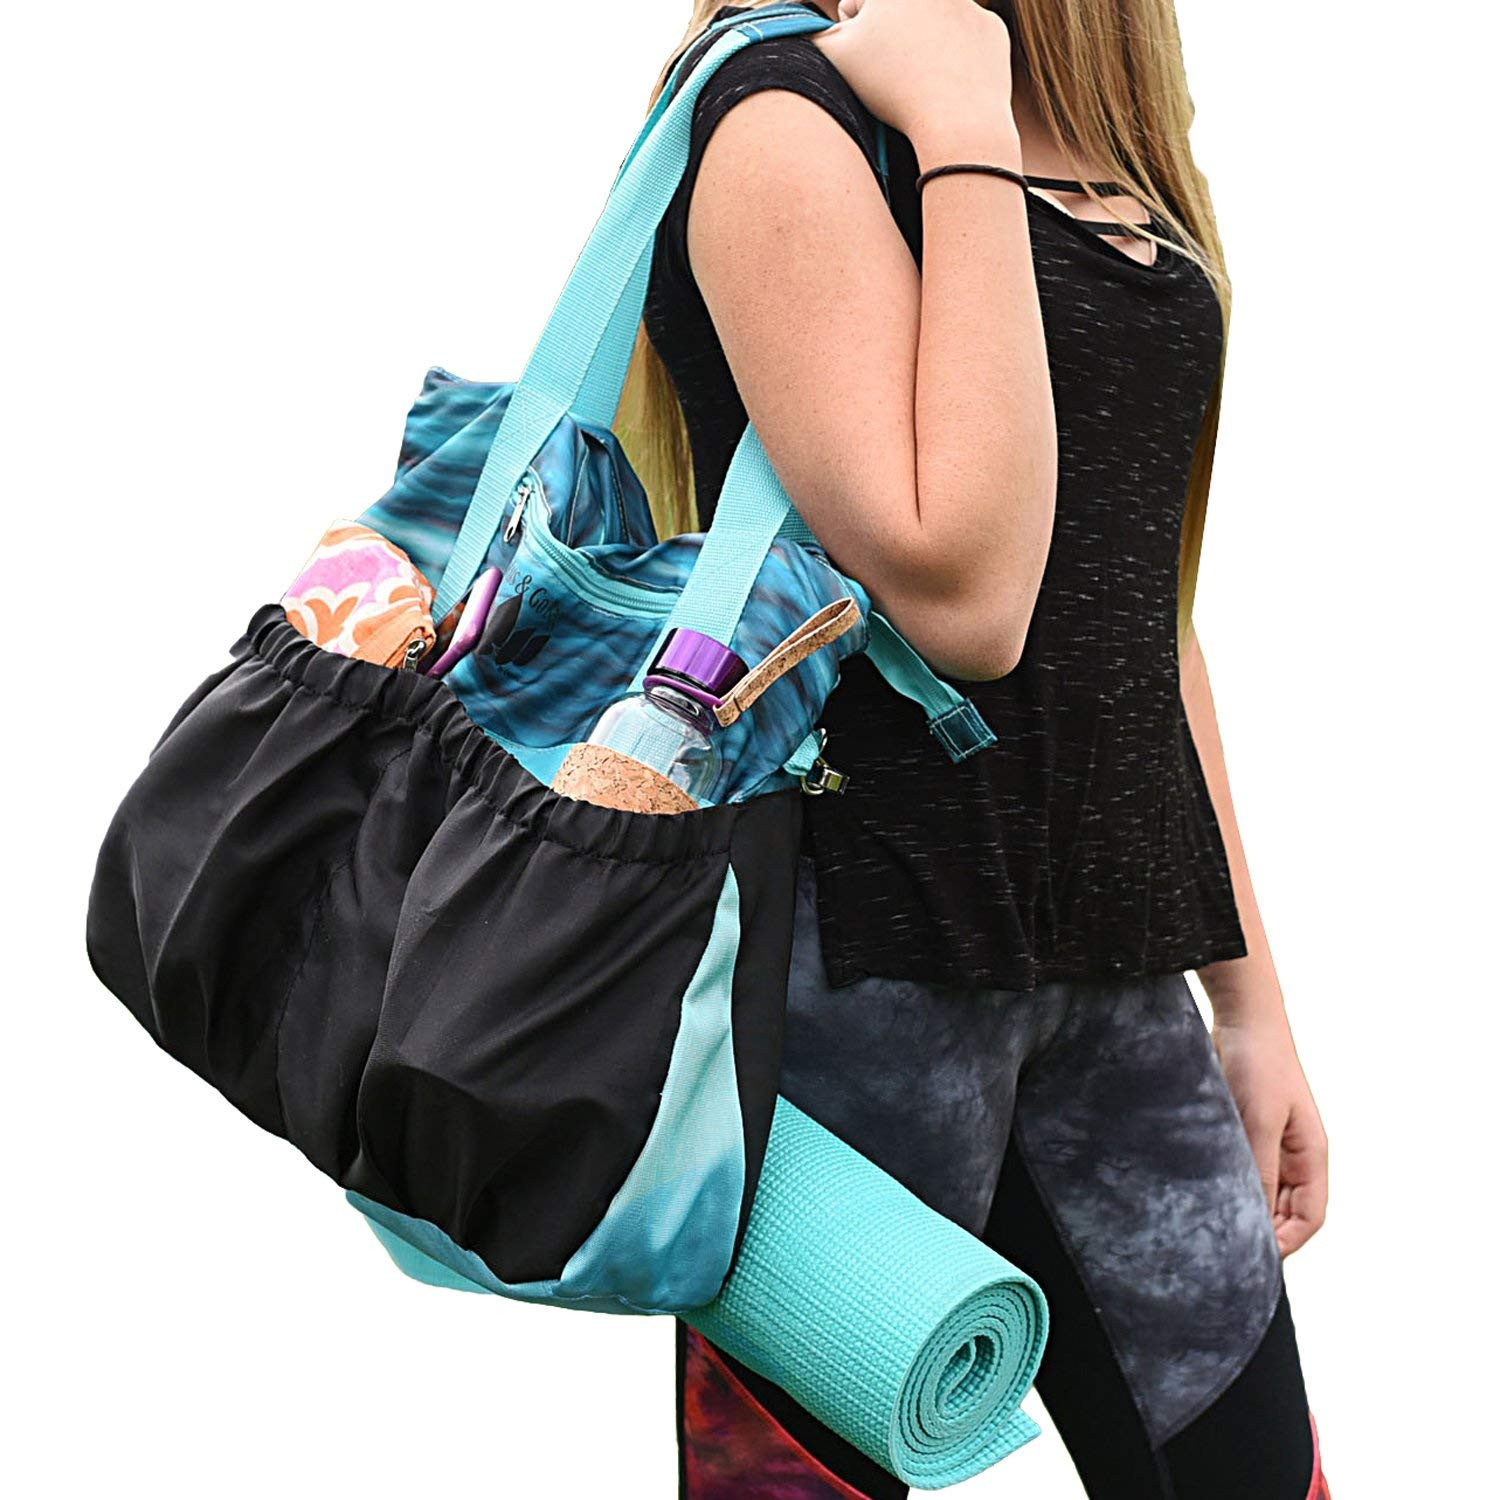 GRS Products Small Yoga Bags, Yoga Mat Bag or Yoga Tote Bag has Many Pockets with Inside Padded Tablet Compartment